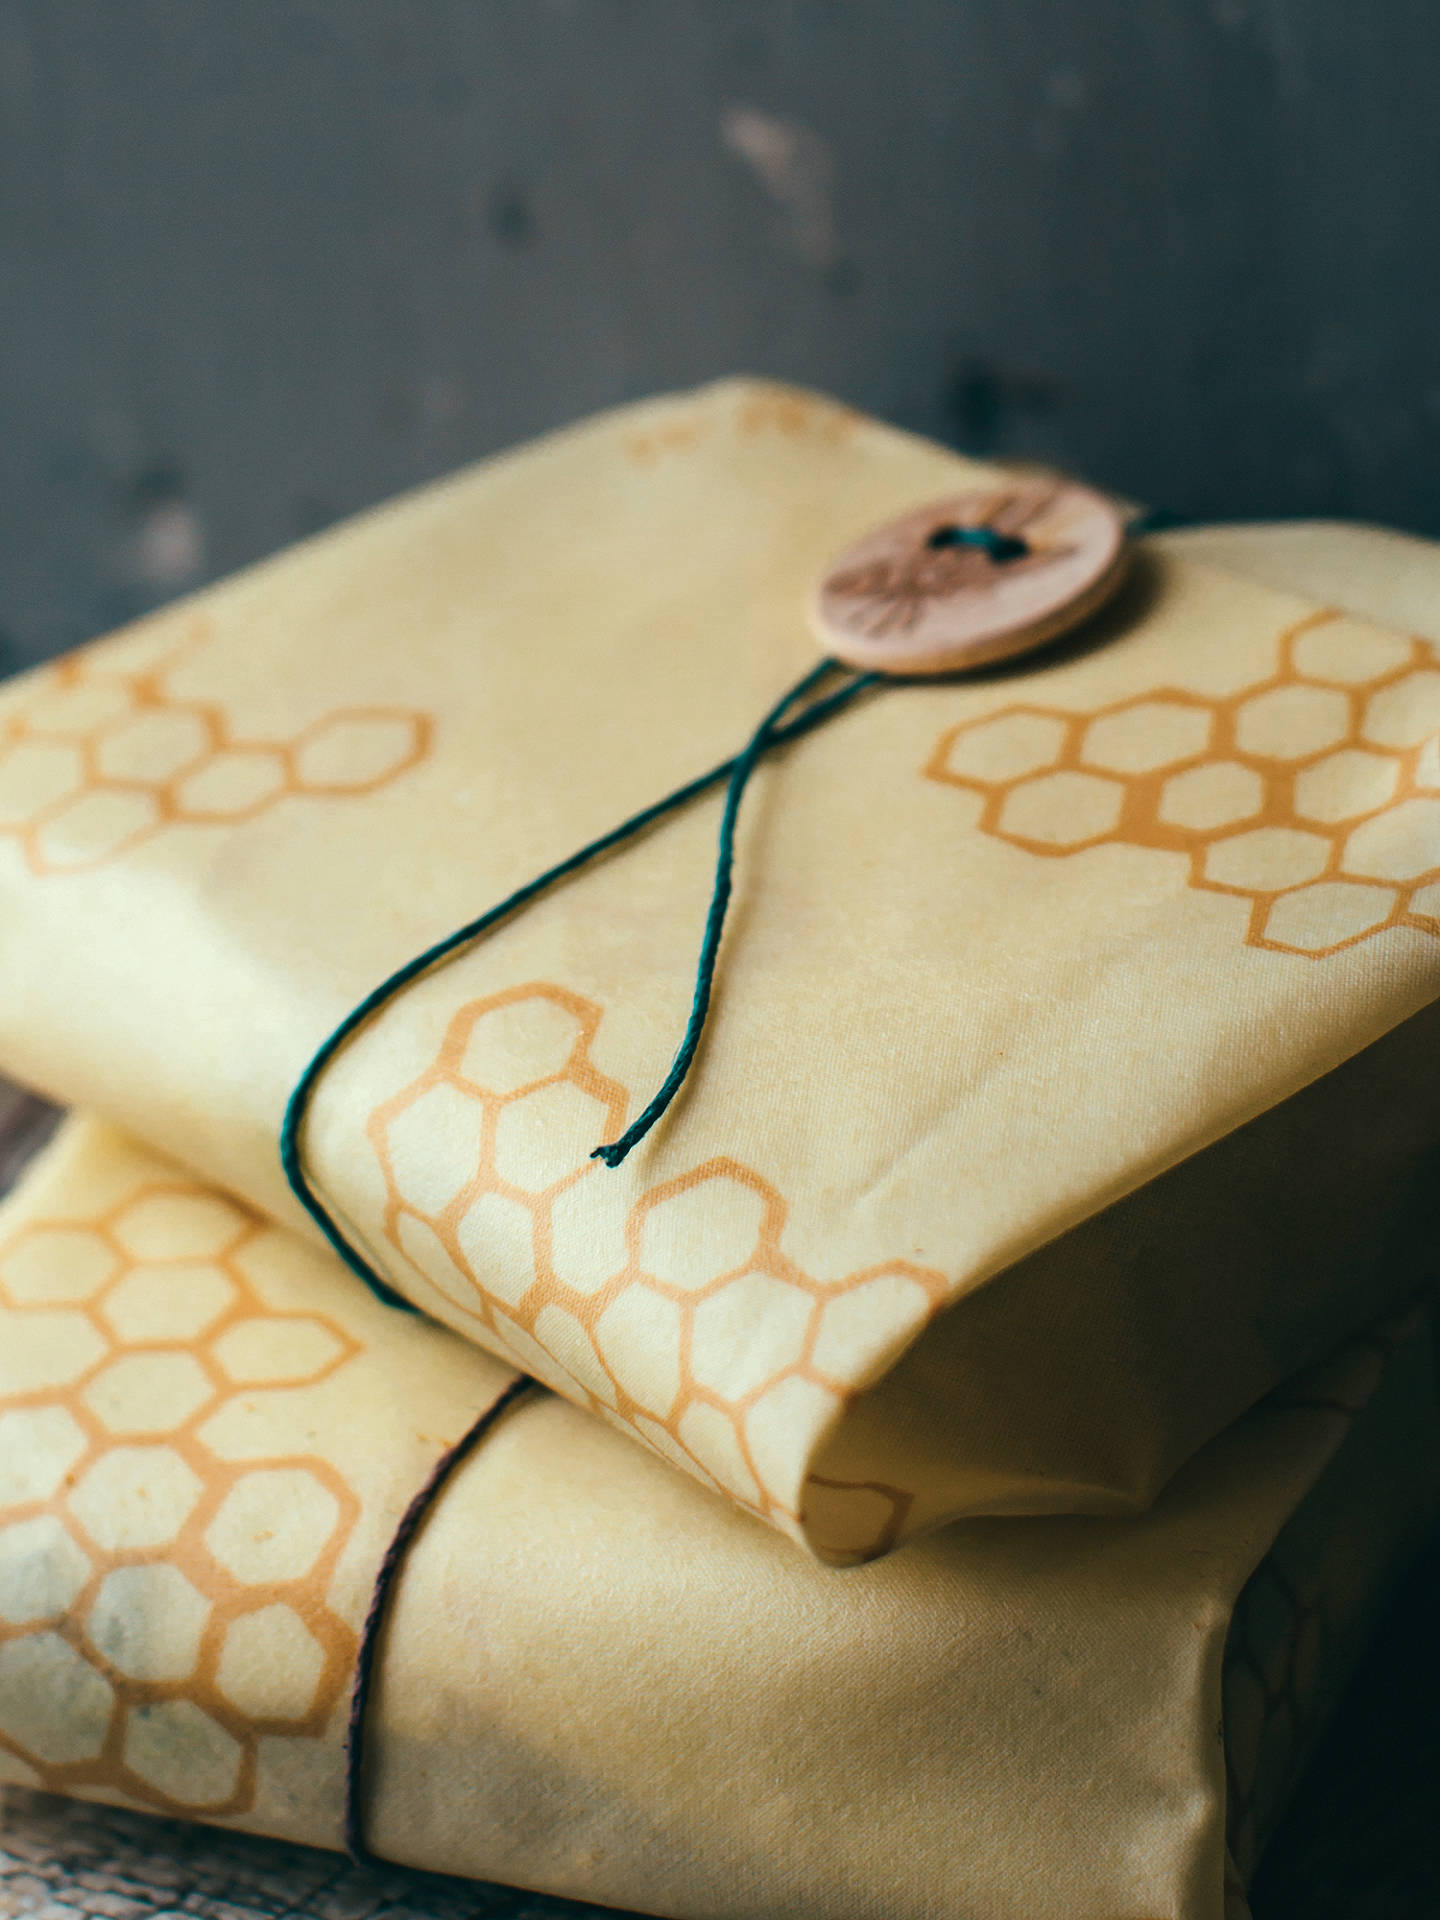 Buy Bee's Wrap Honeycomb Reusable Sandwich Wrap Online at johnlewis.com